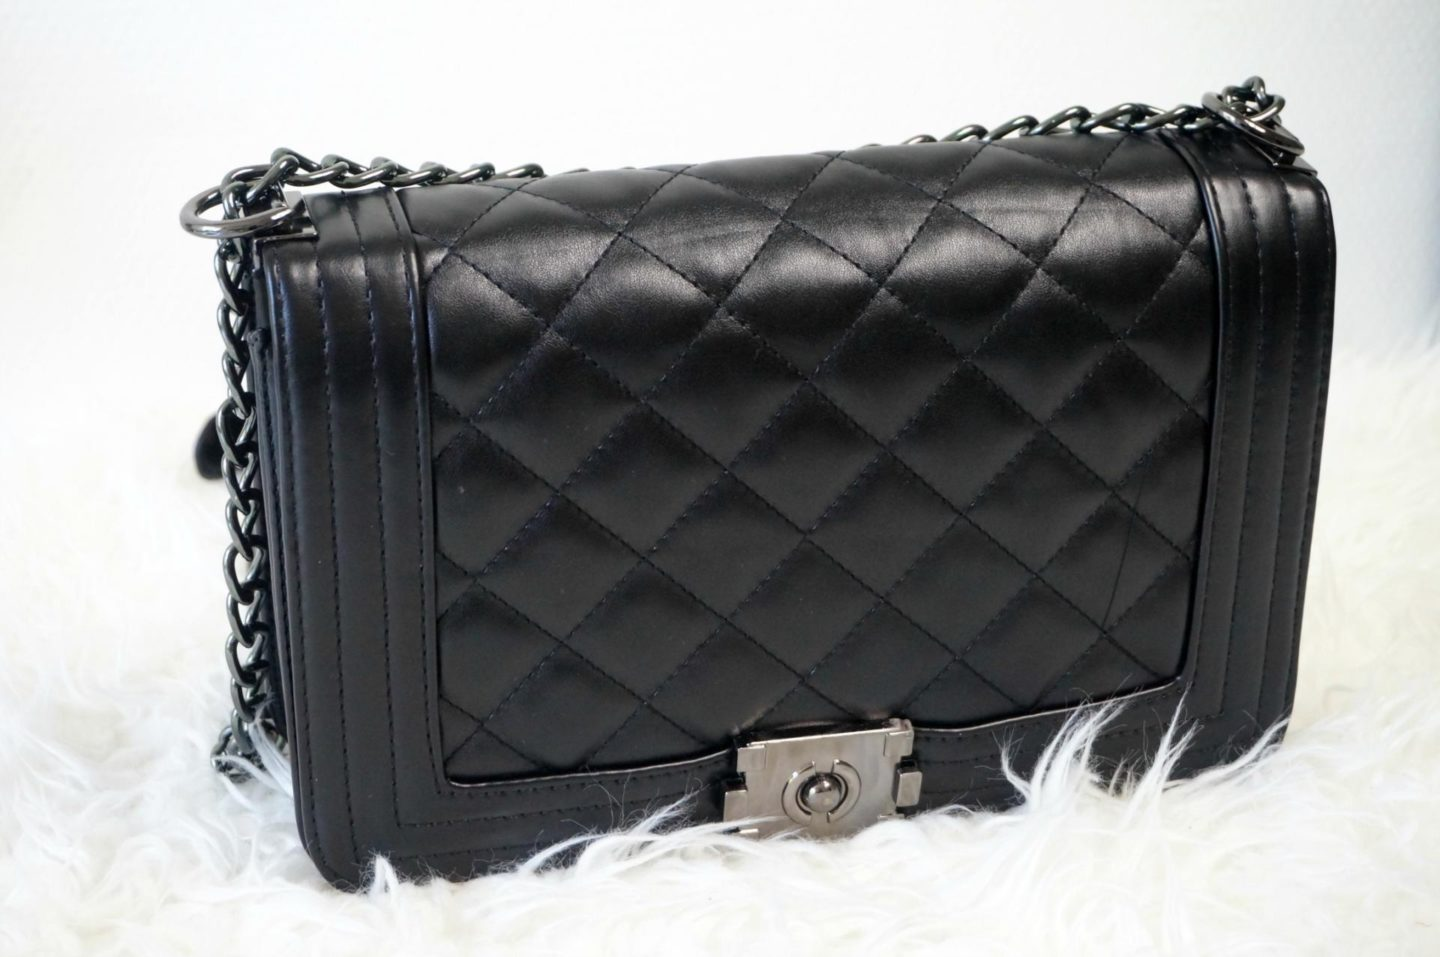 Chanel inspired: Quilted Chain bag